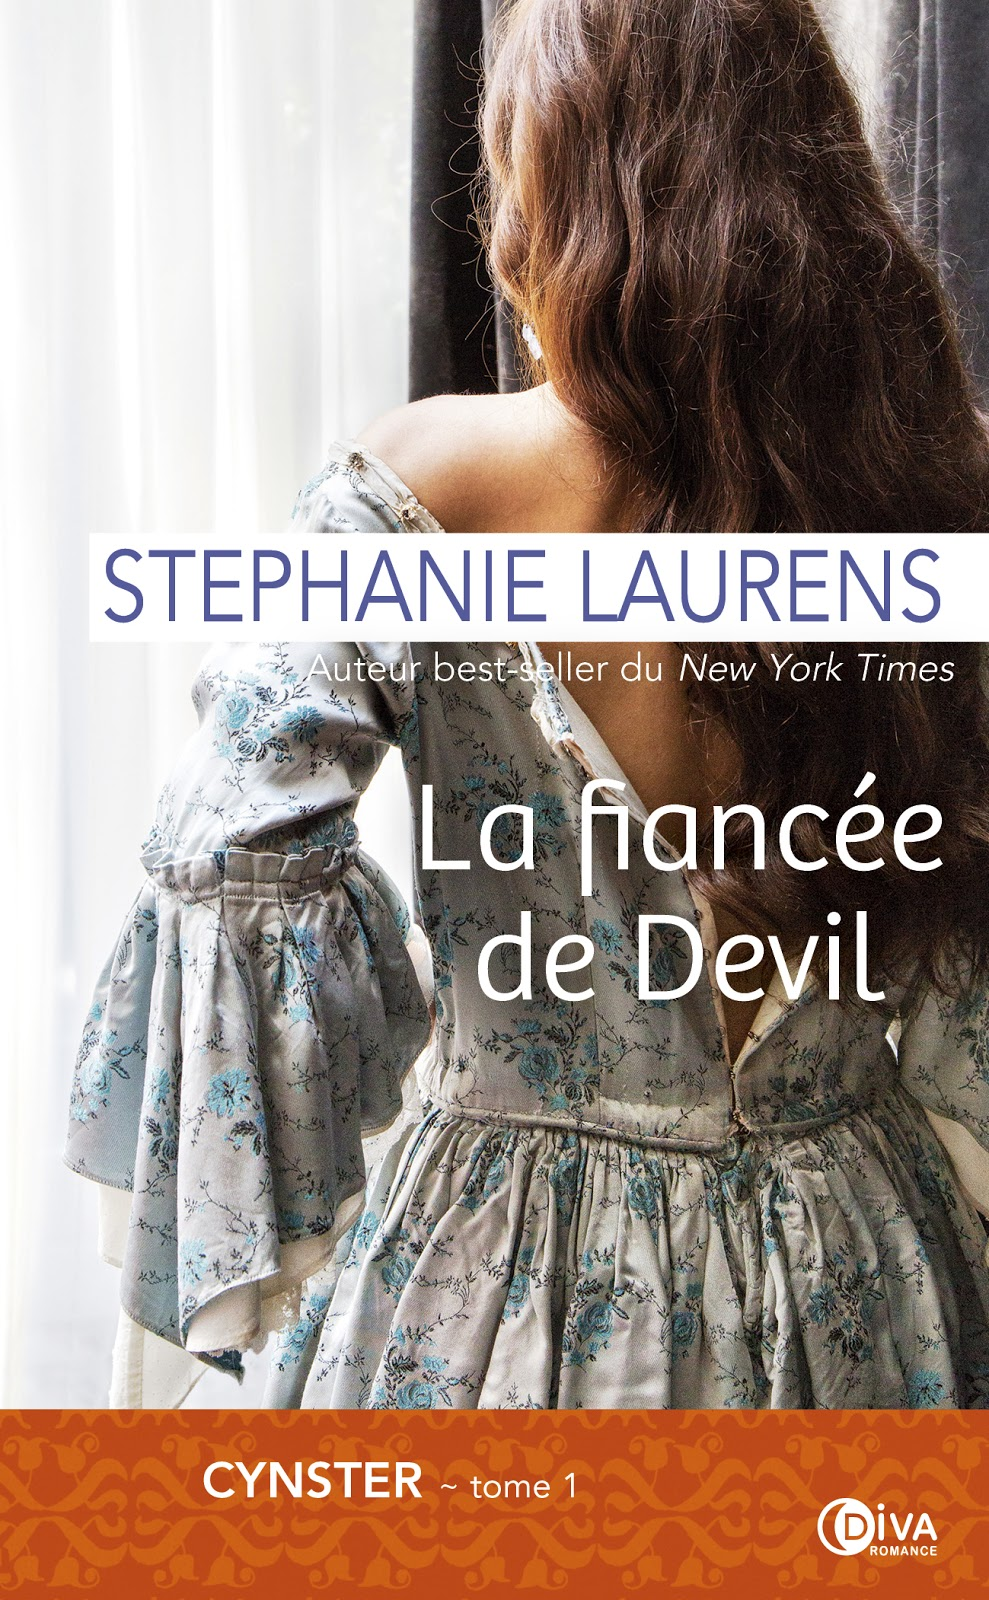 Stephanie Laurens - Cynster 1 - La fiancée de Devil